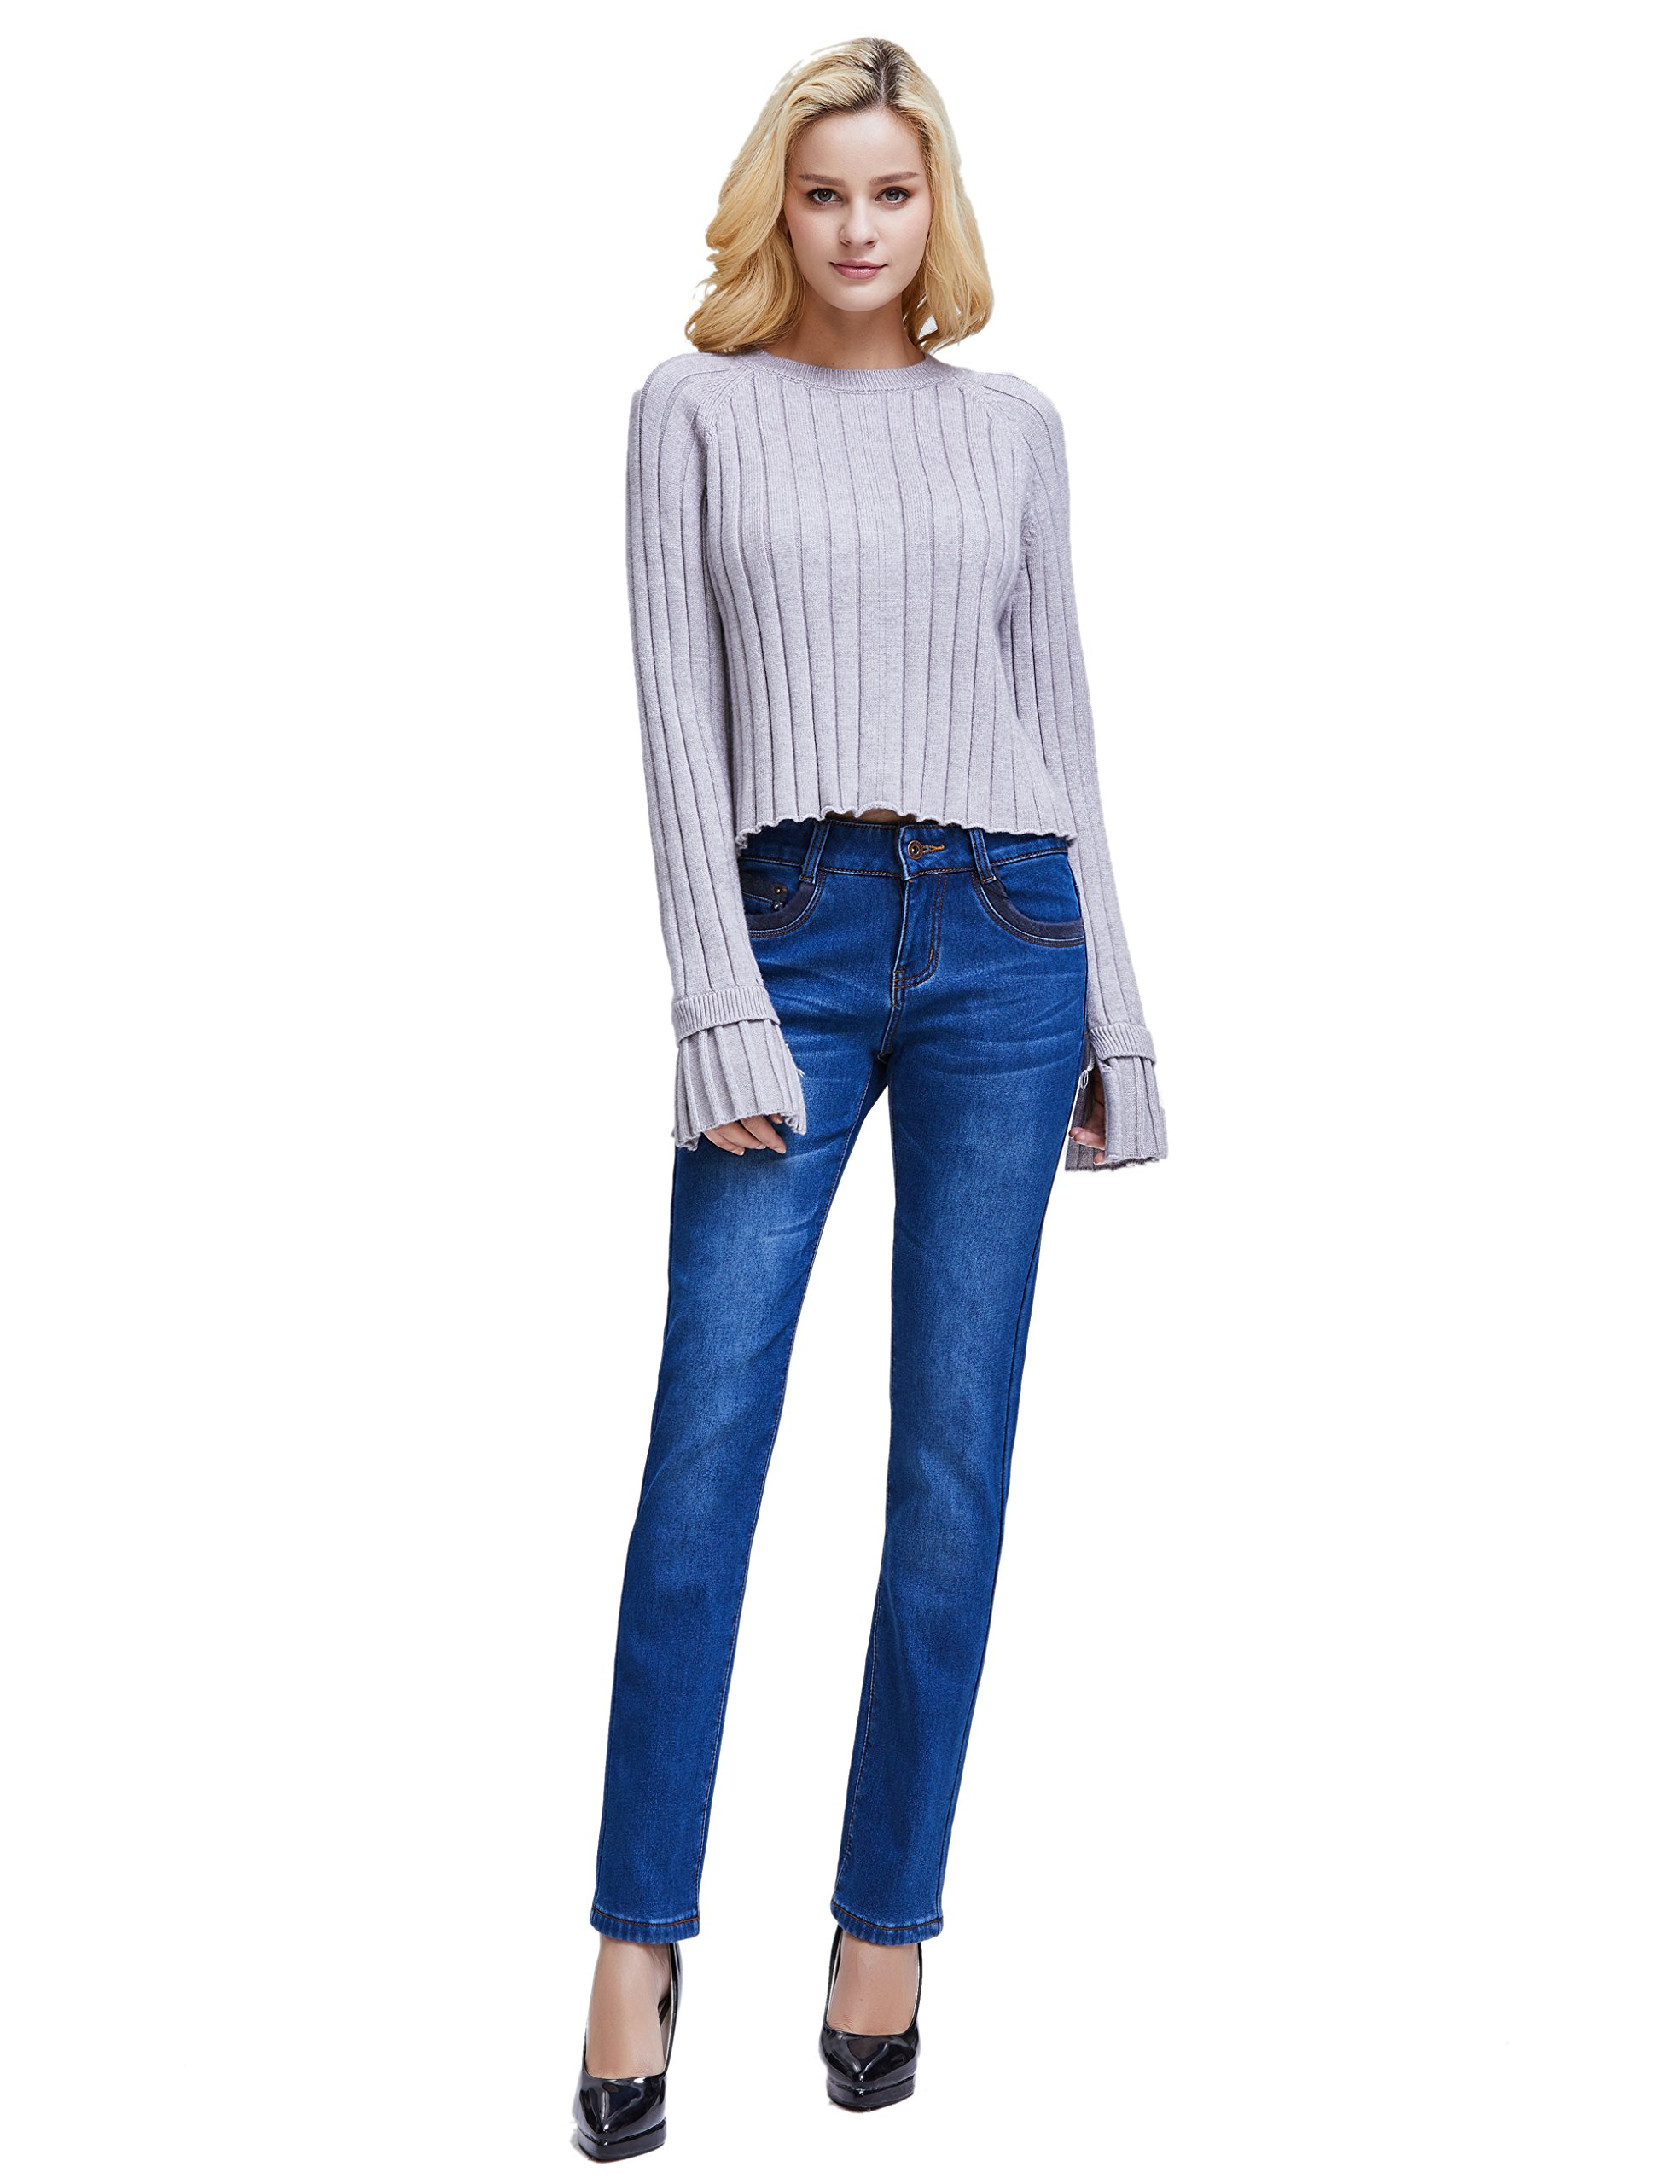 Camii Mia Women's Winter Slim Fit Thermal Jeans Pants (W28 x L30, Blue (New Size)) by Camii Mia (Image #5)